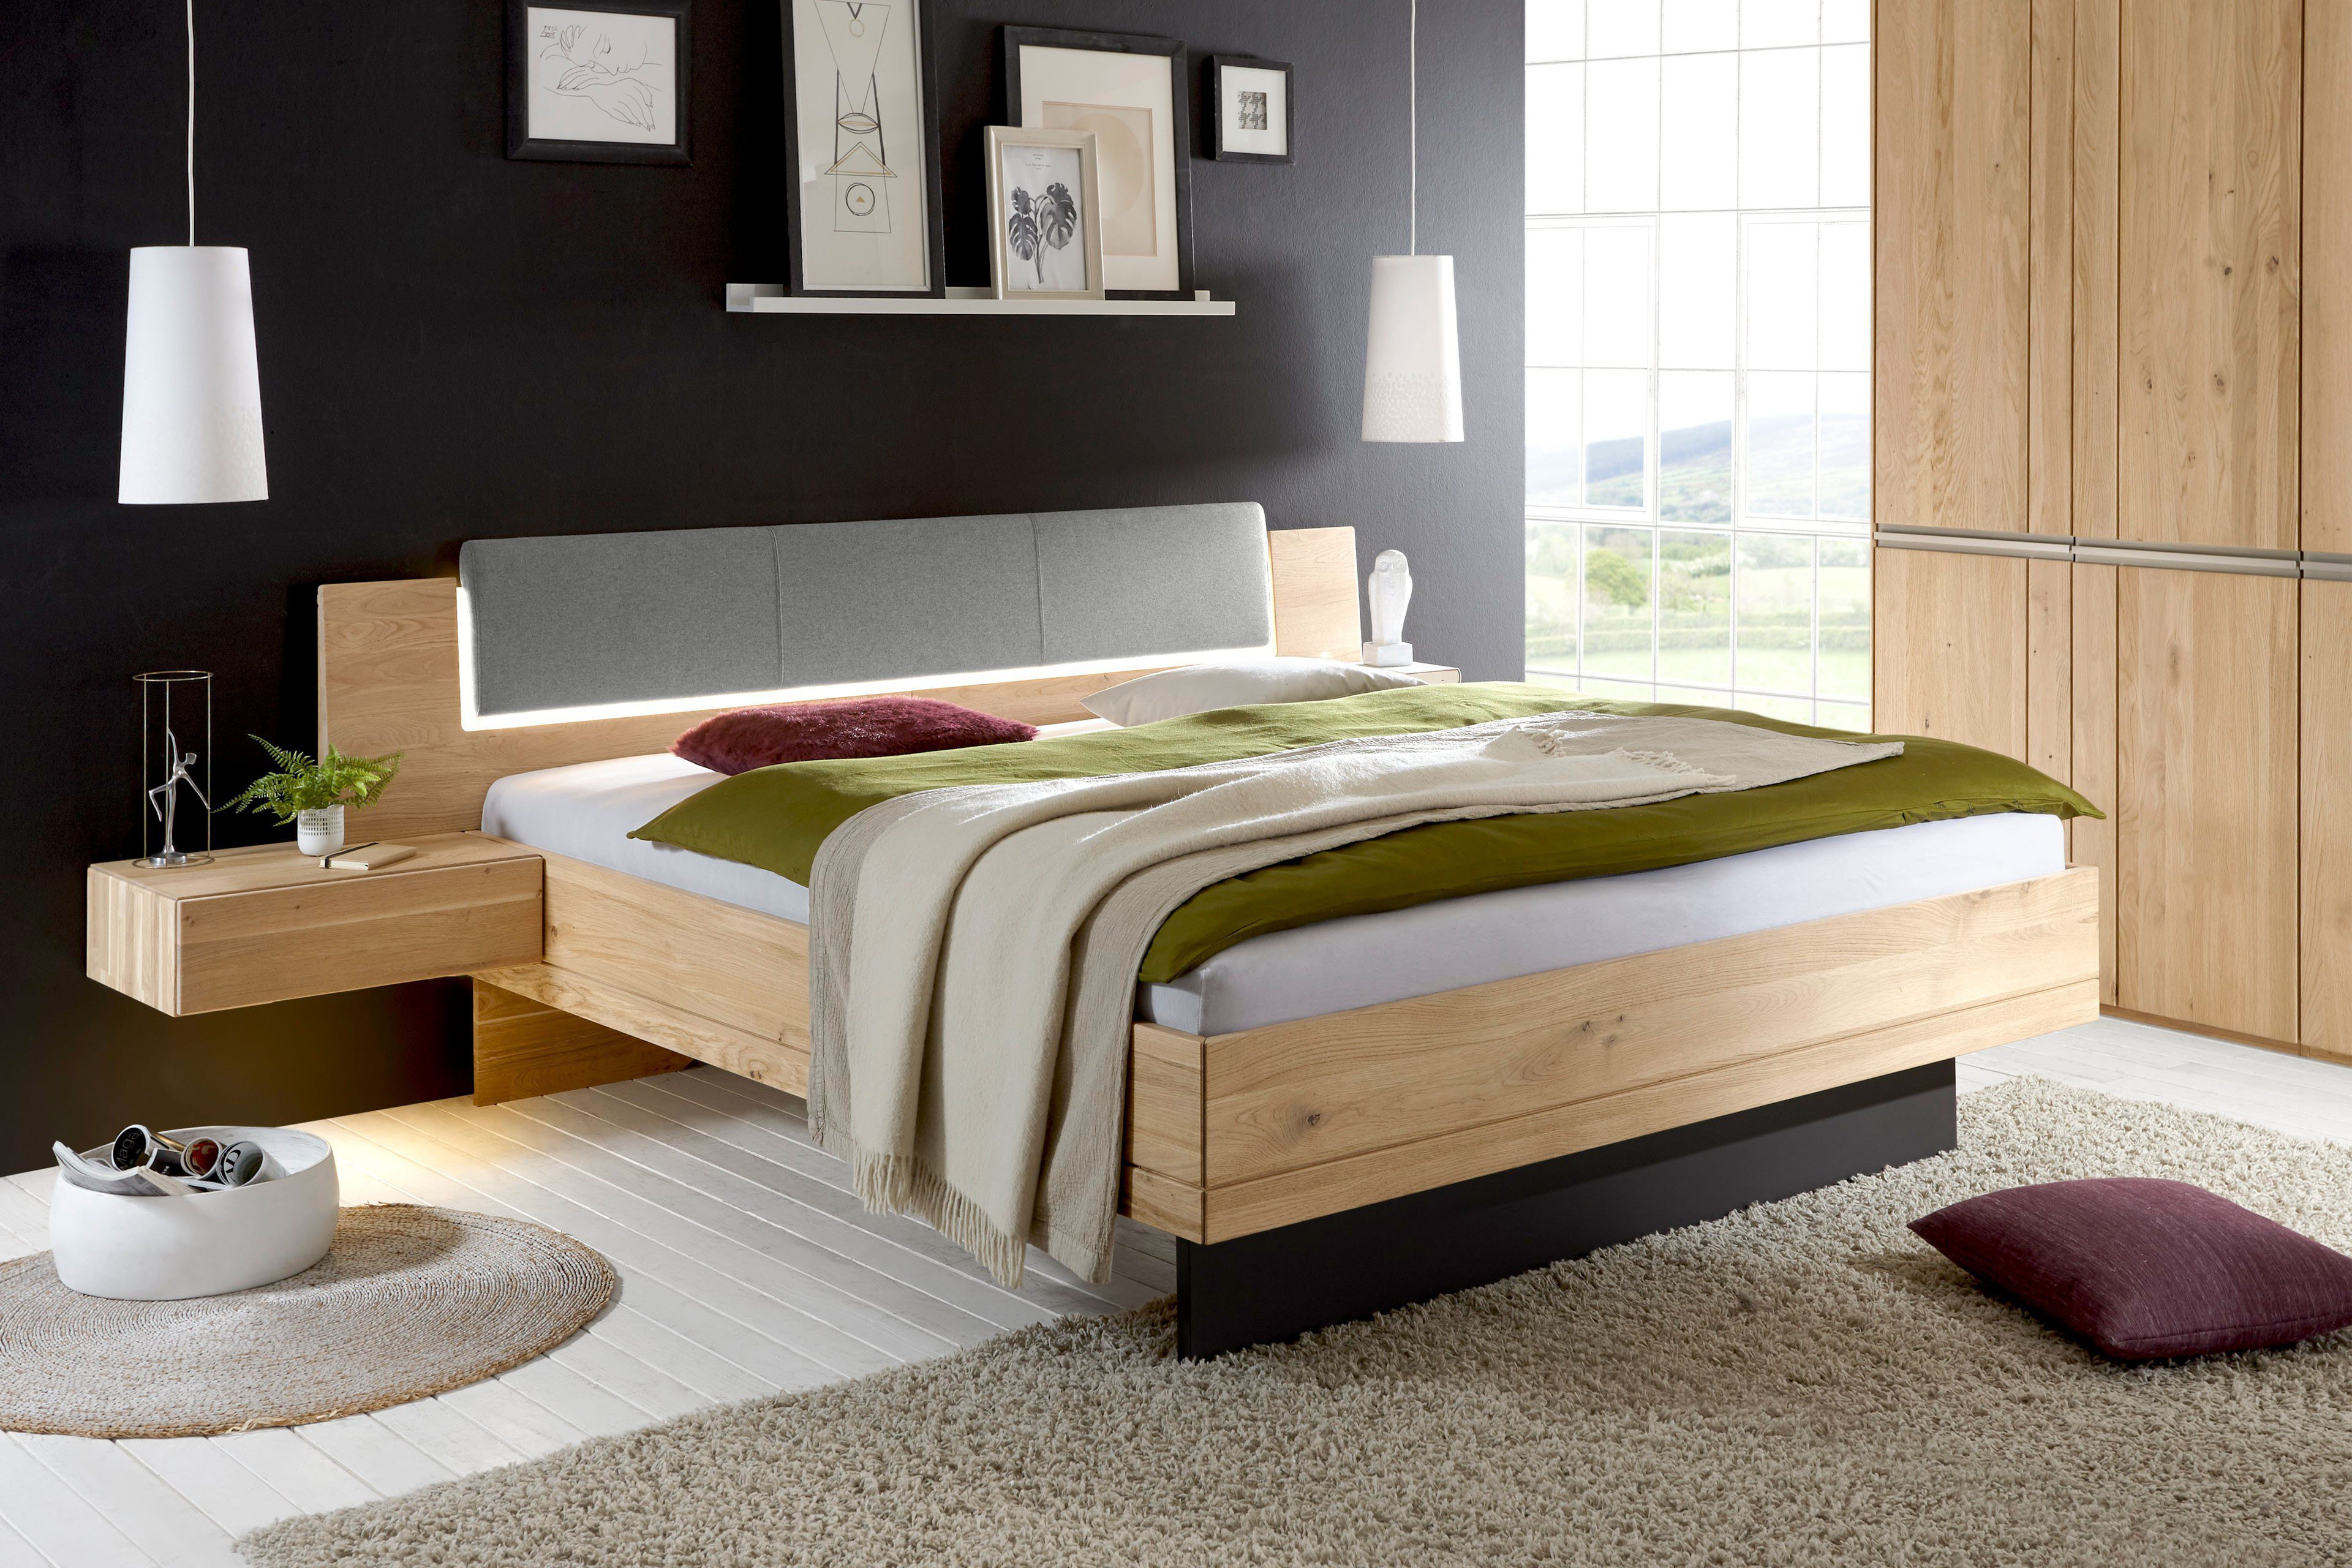 loddenkemper leno massivholz bettanlage m bel letz ihr online shop. Black Bedroom Furniture Sets. Home Design Ideas